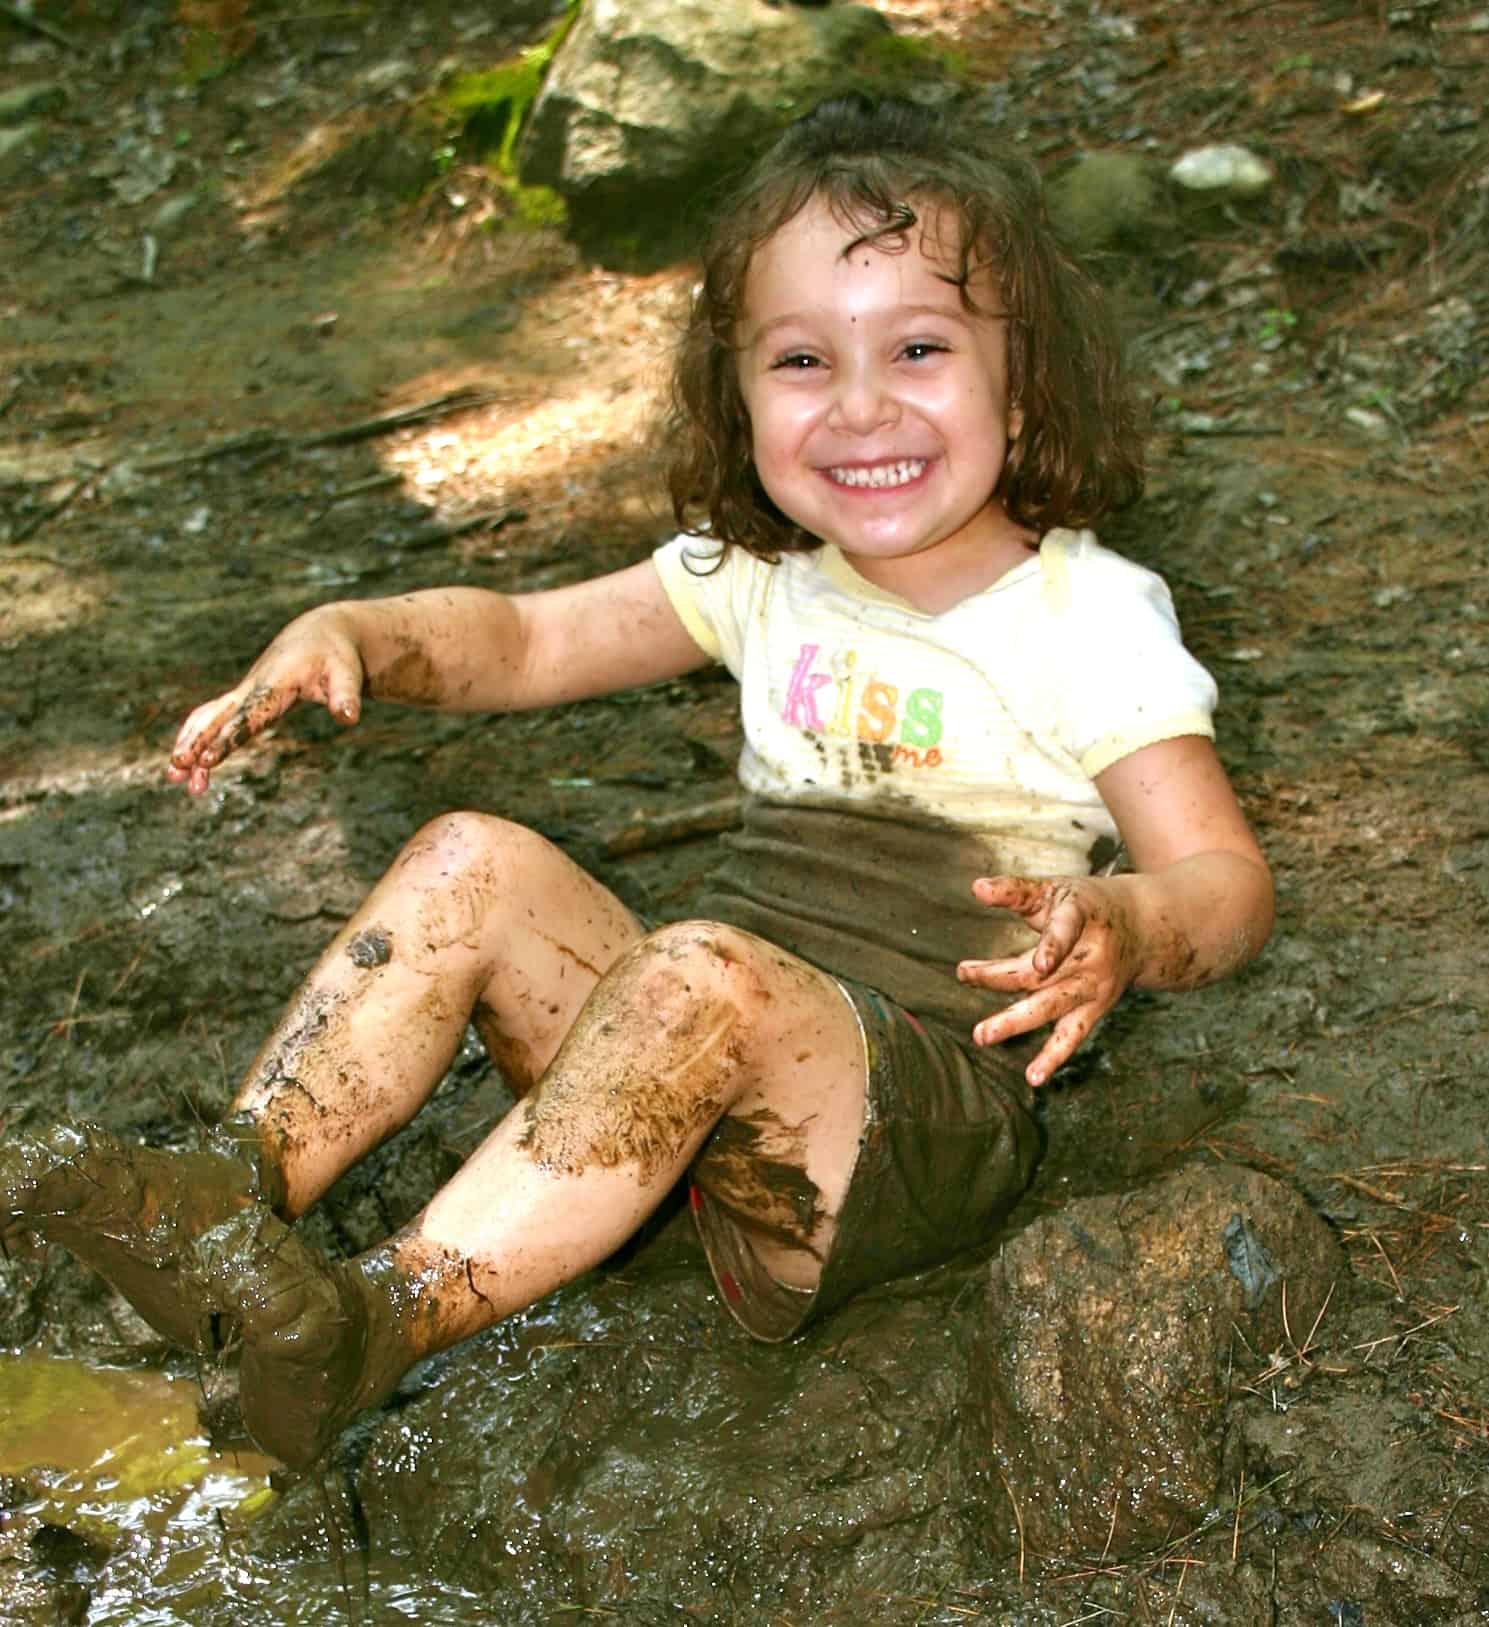 happy little girl playing hard at the edge of a creek